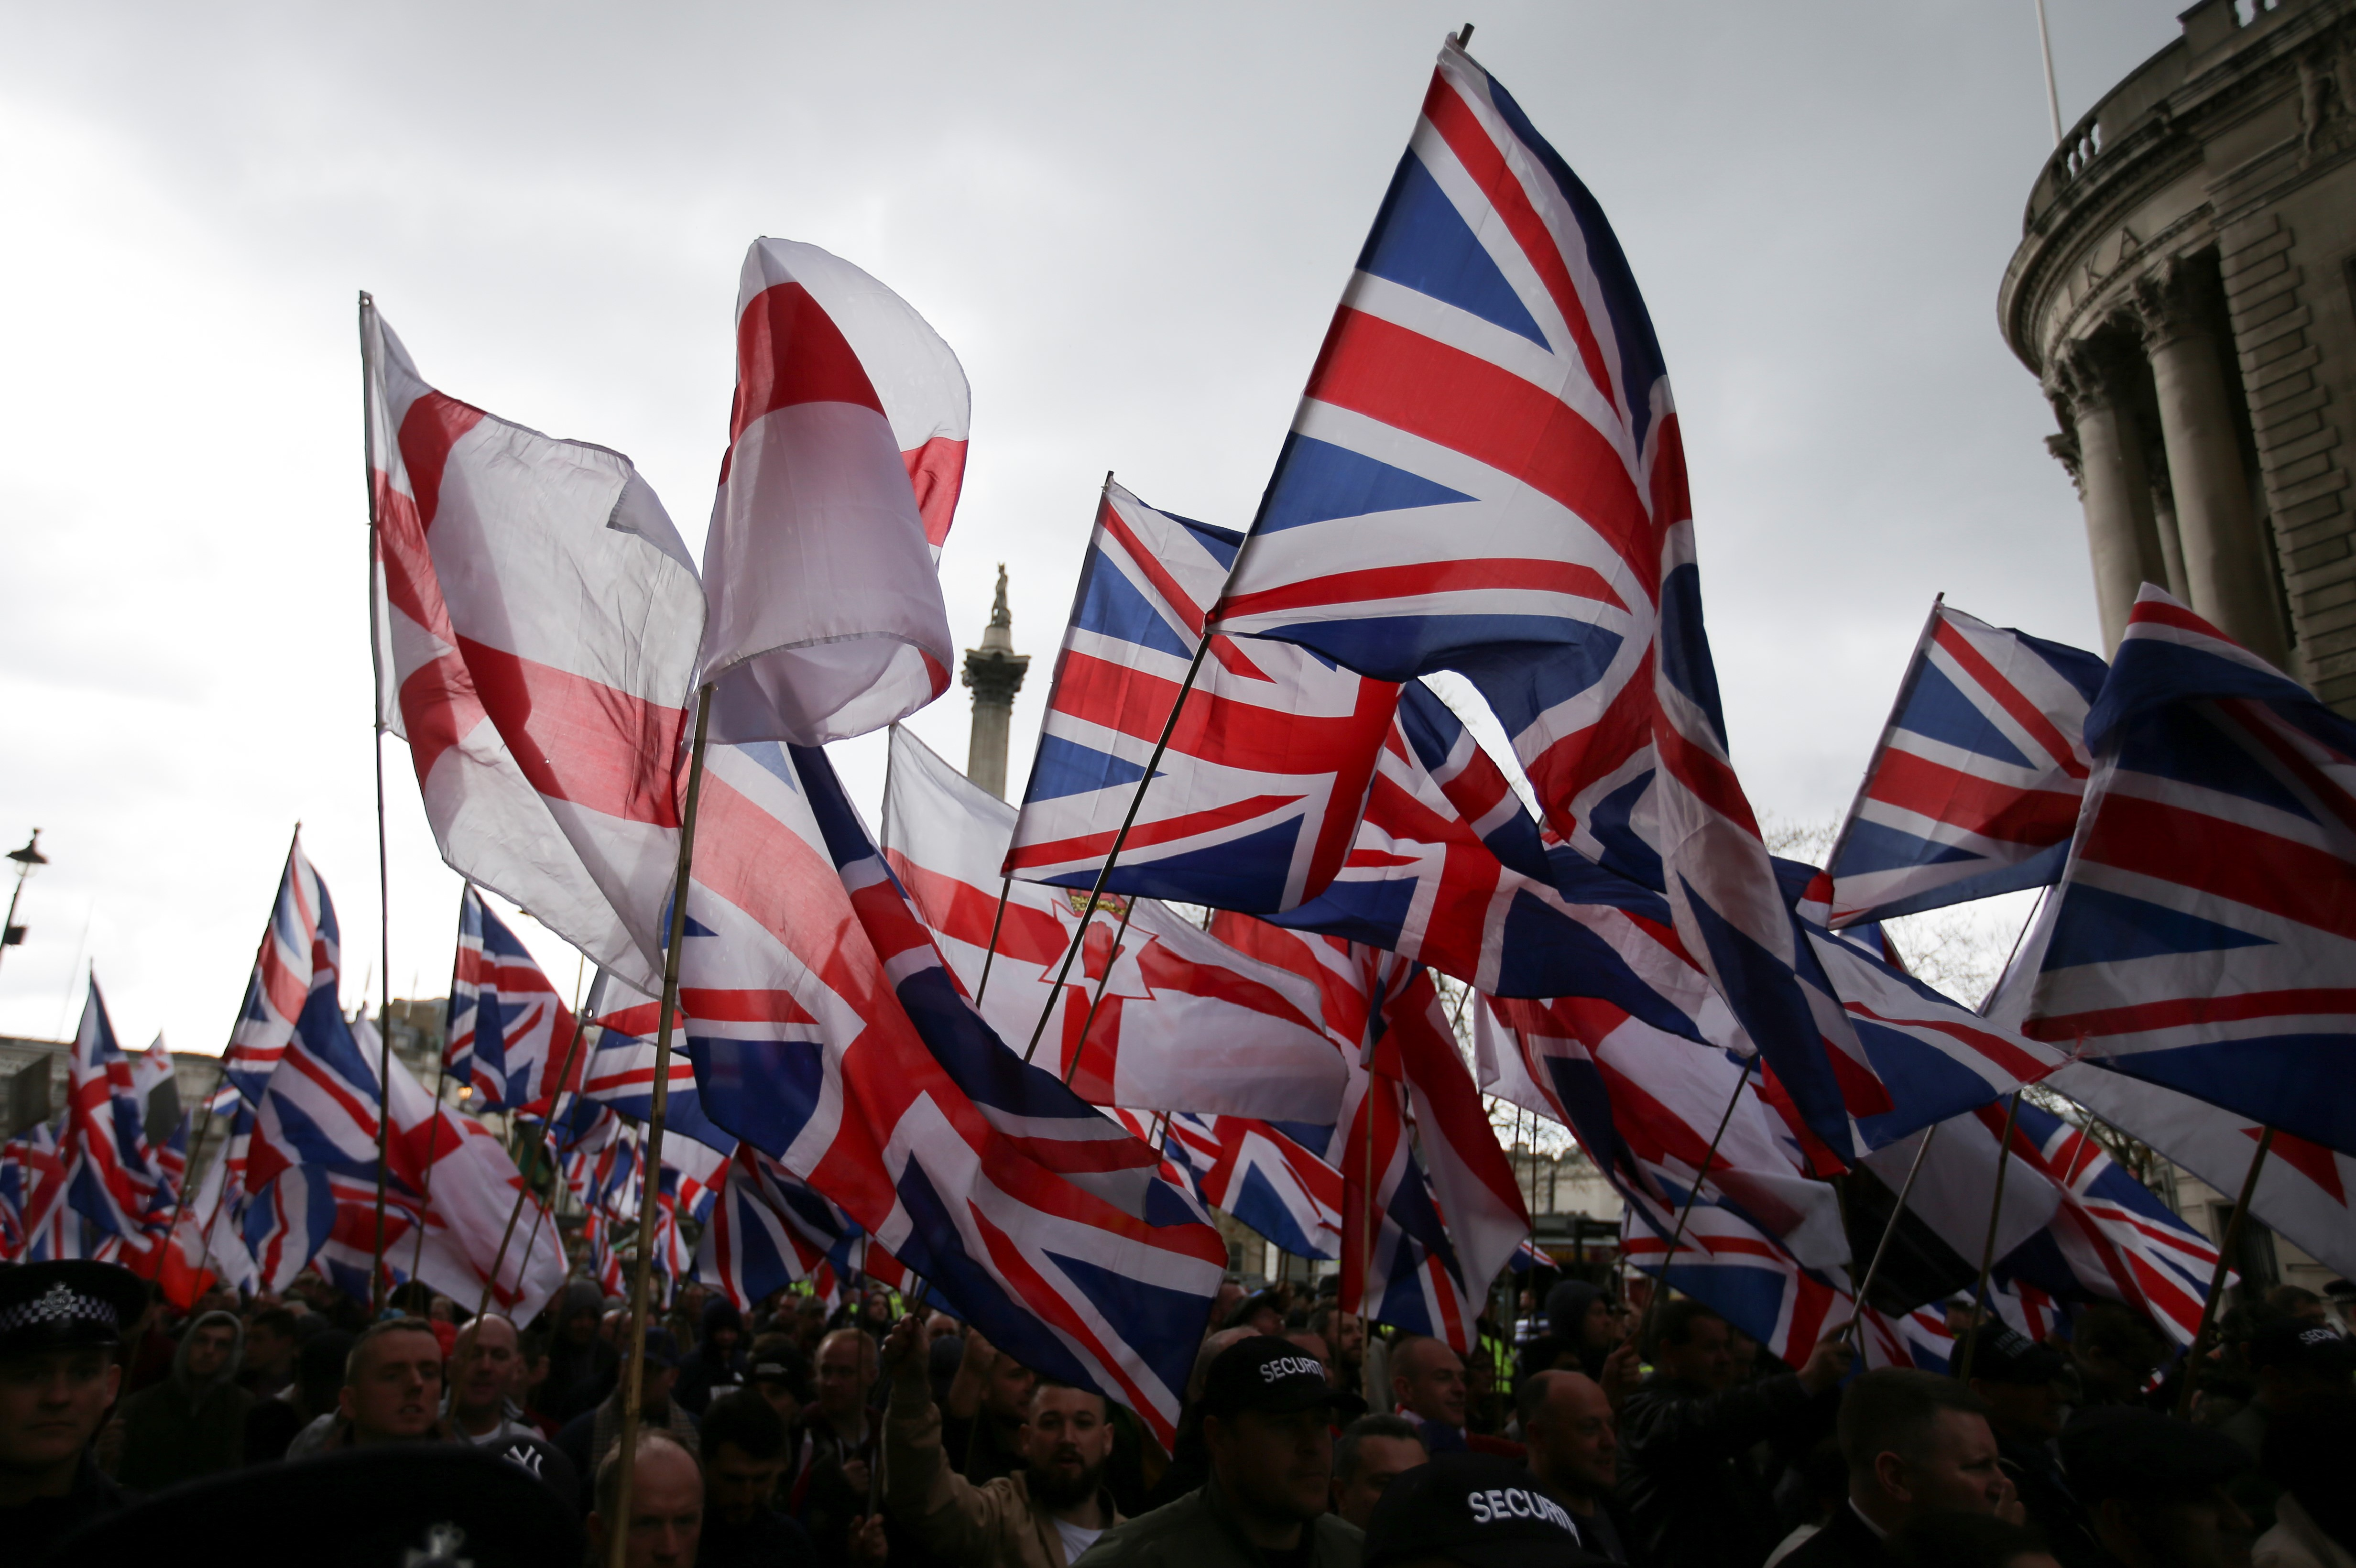 Supporters of the far-right group Britain First wave flags as they march and rally in central London on 1 April, 2017 (AFP)